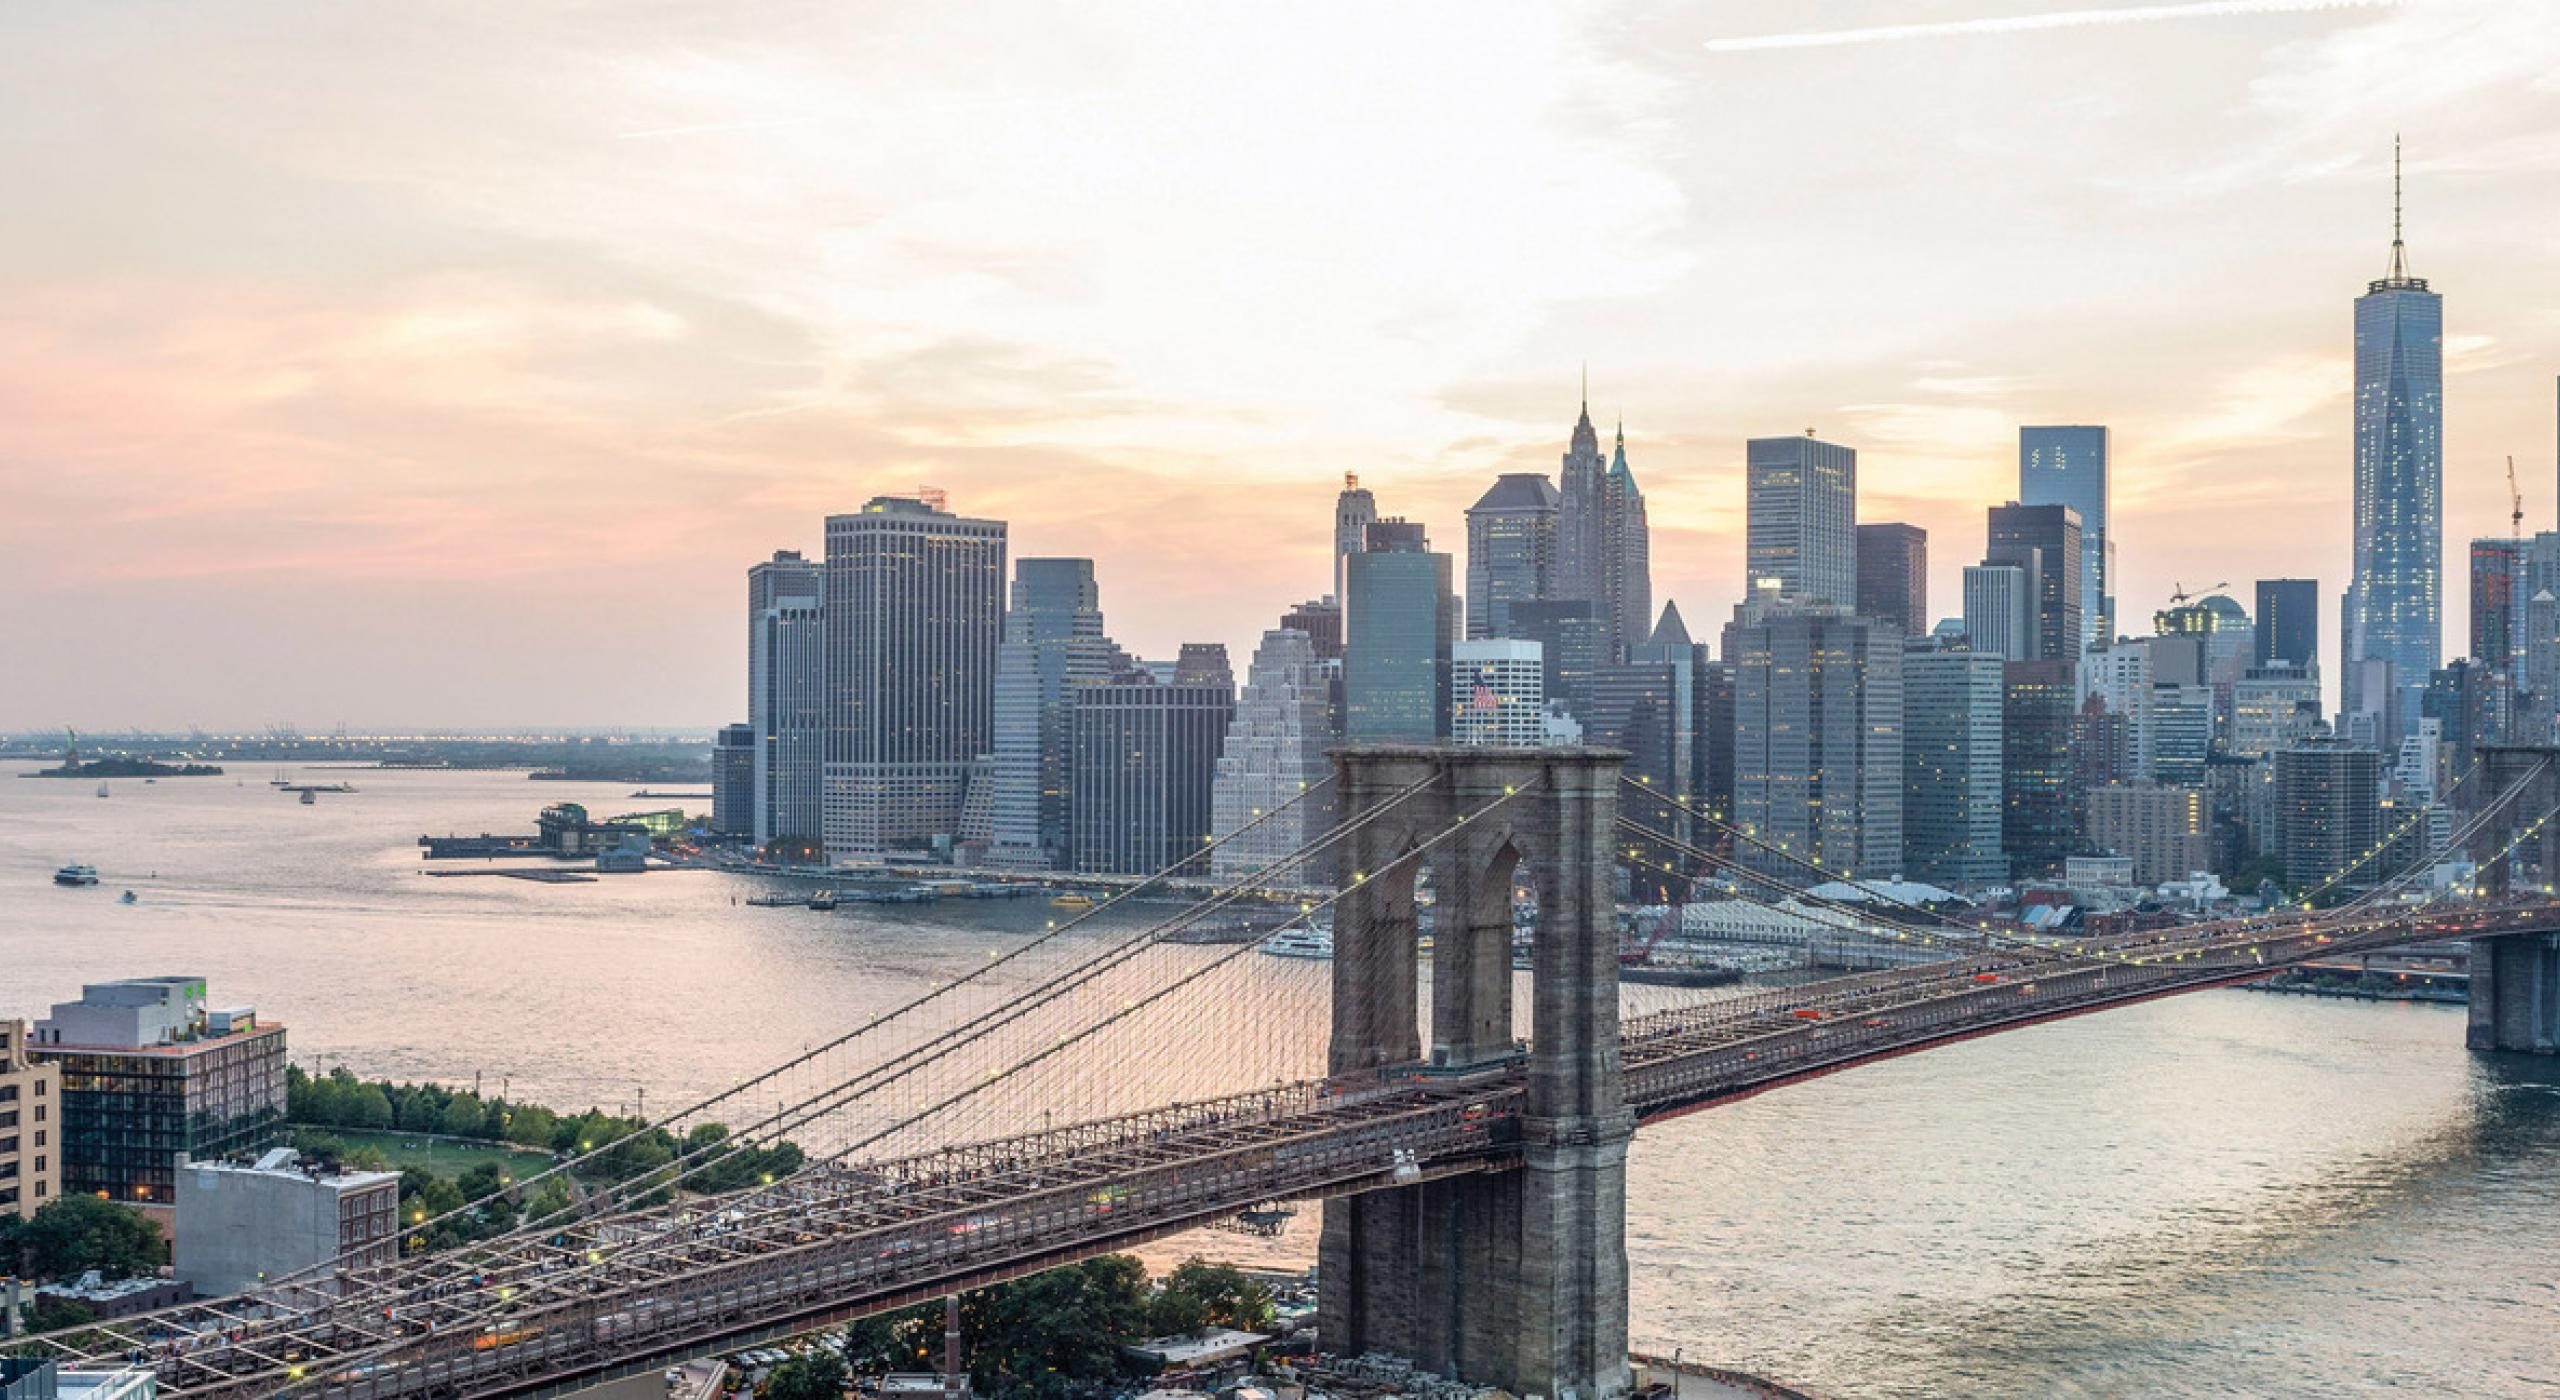 New York City, NY: Thrilling City of Iconic Attractions